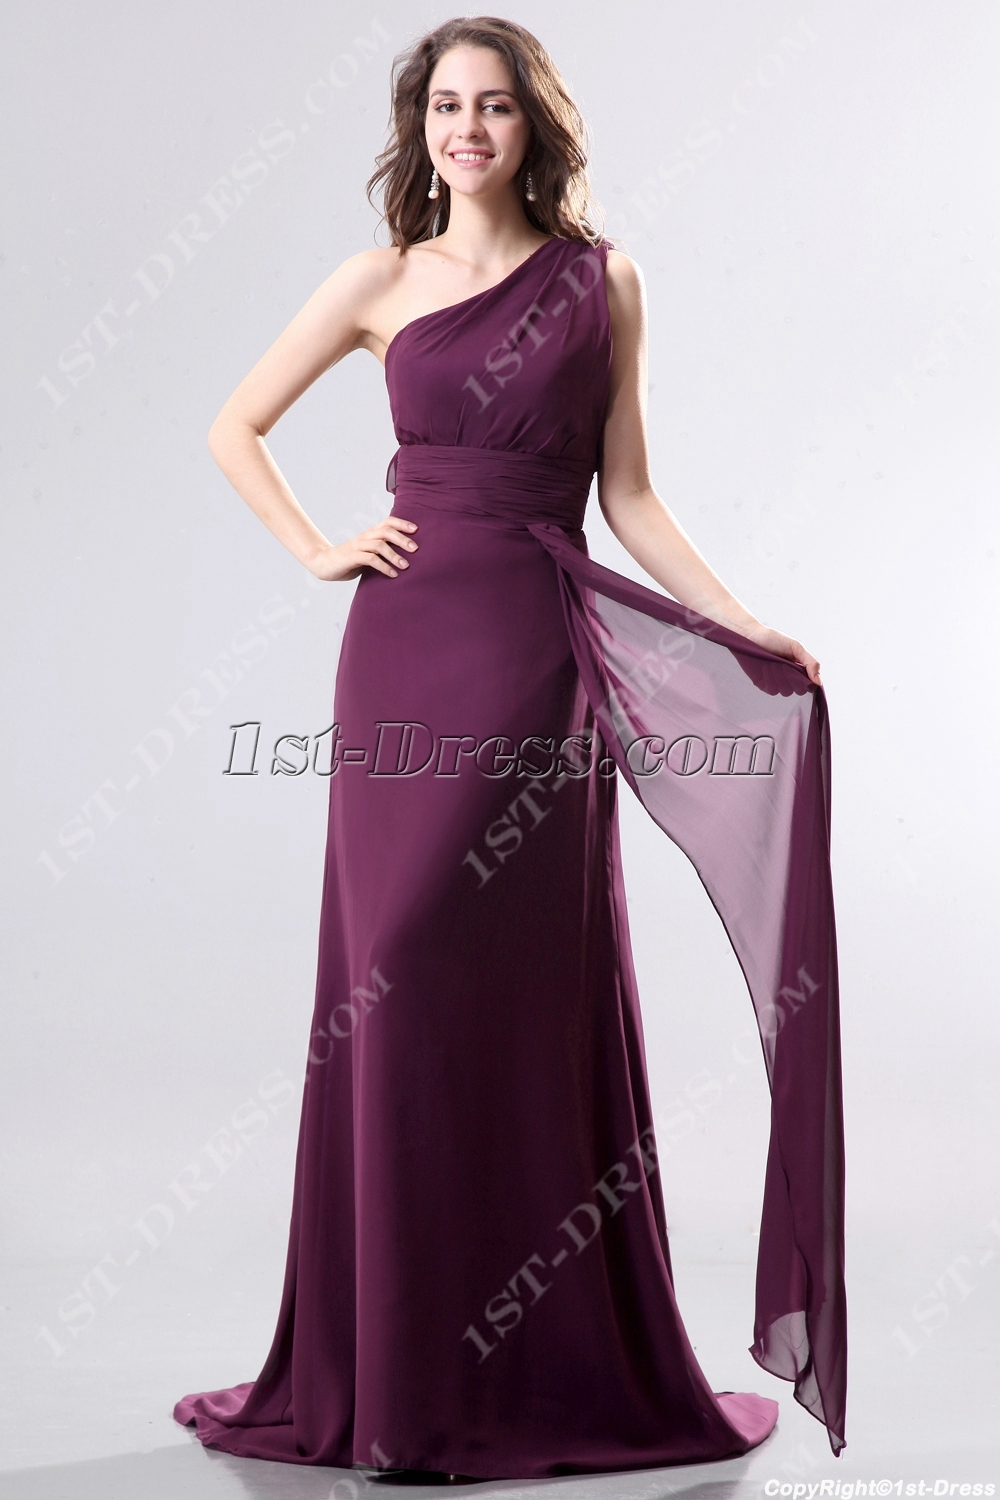 Dark Purple One Shoulder Chiffon Evening Dress With Train Loading Zoom